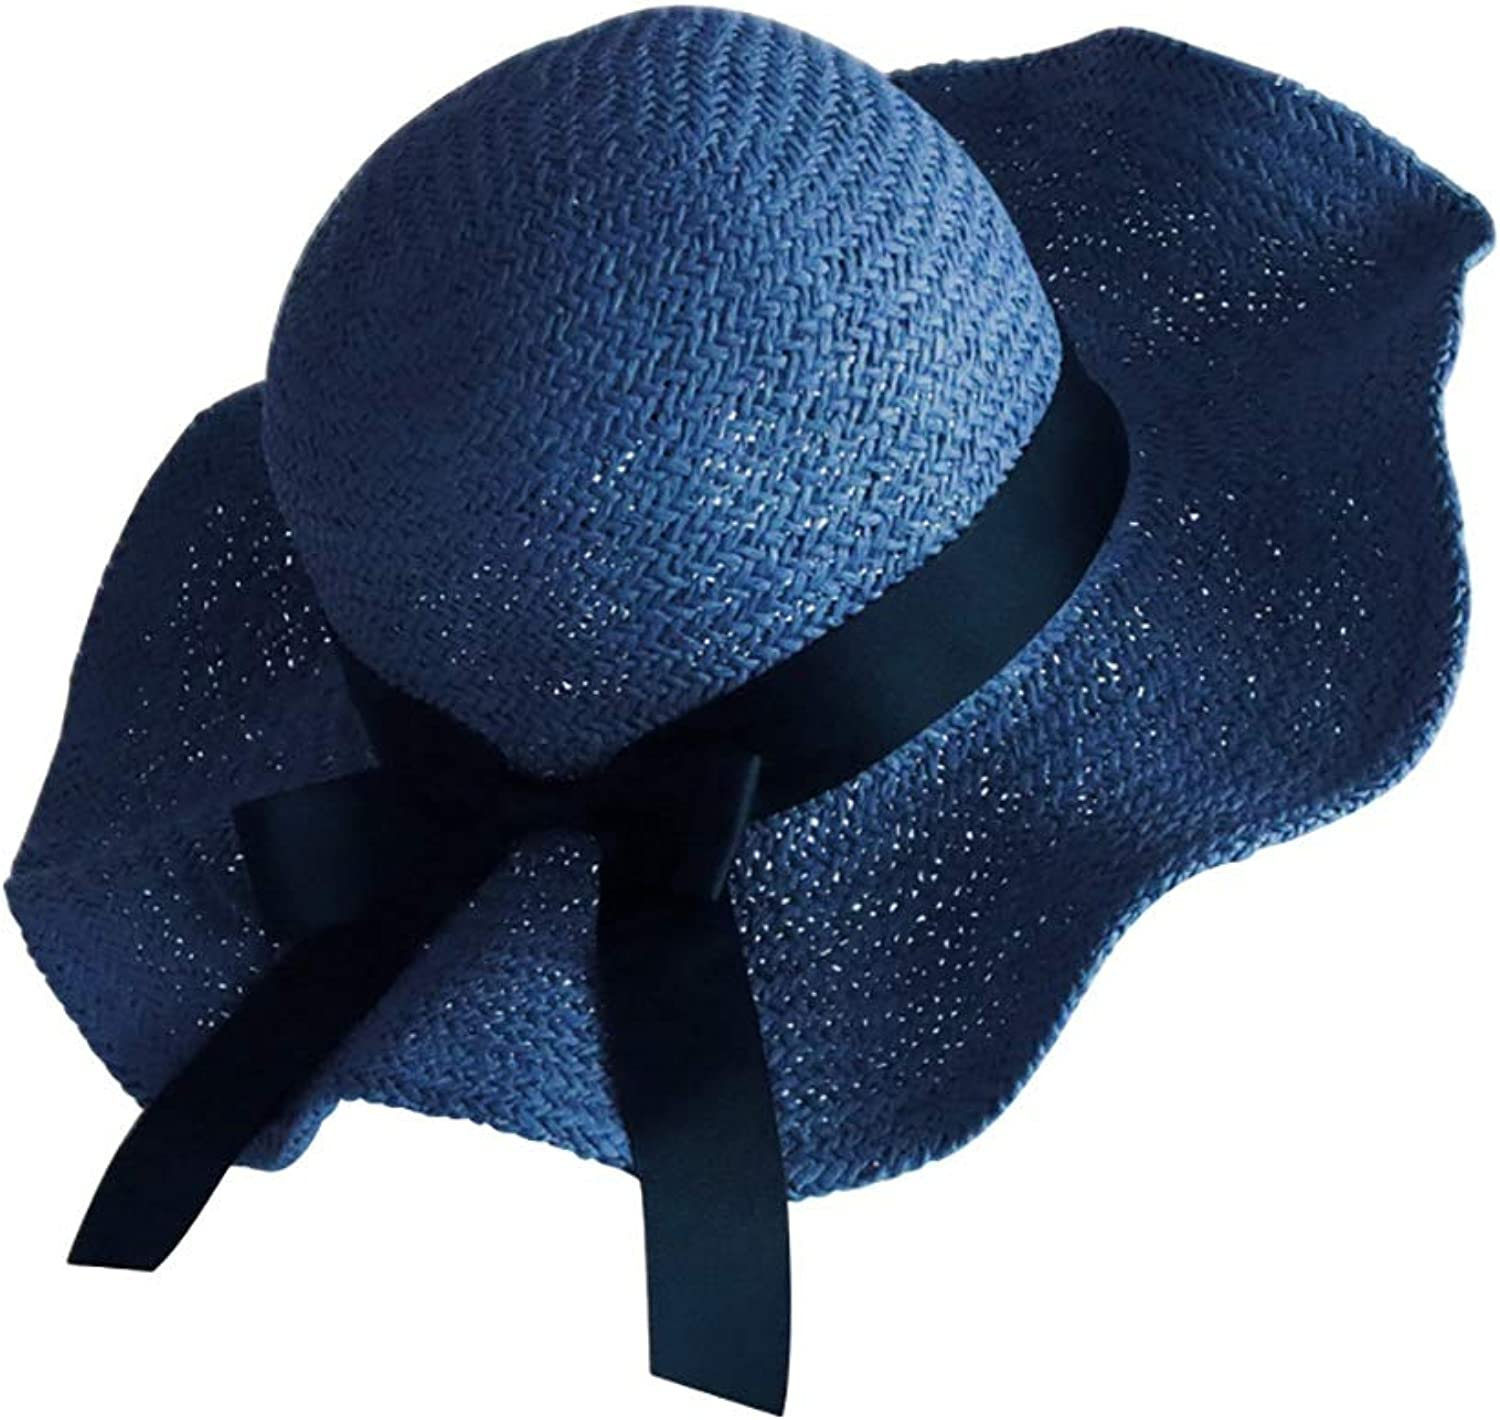 Beach Straw Hat Female Foldable bluee with Shaping Wire, Can Change The Shape at Will